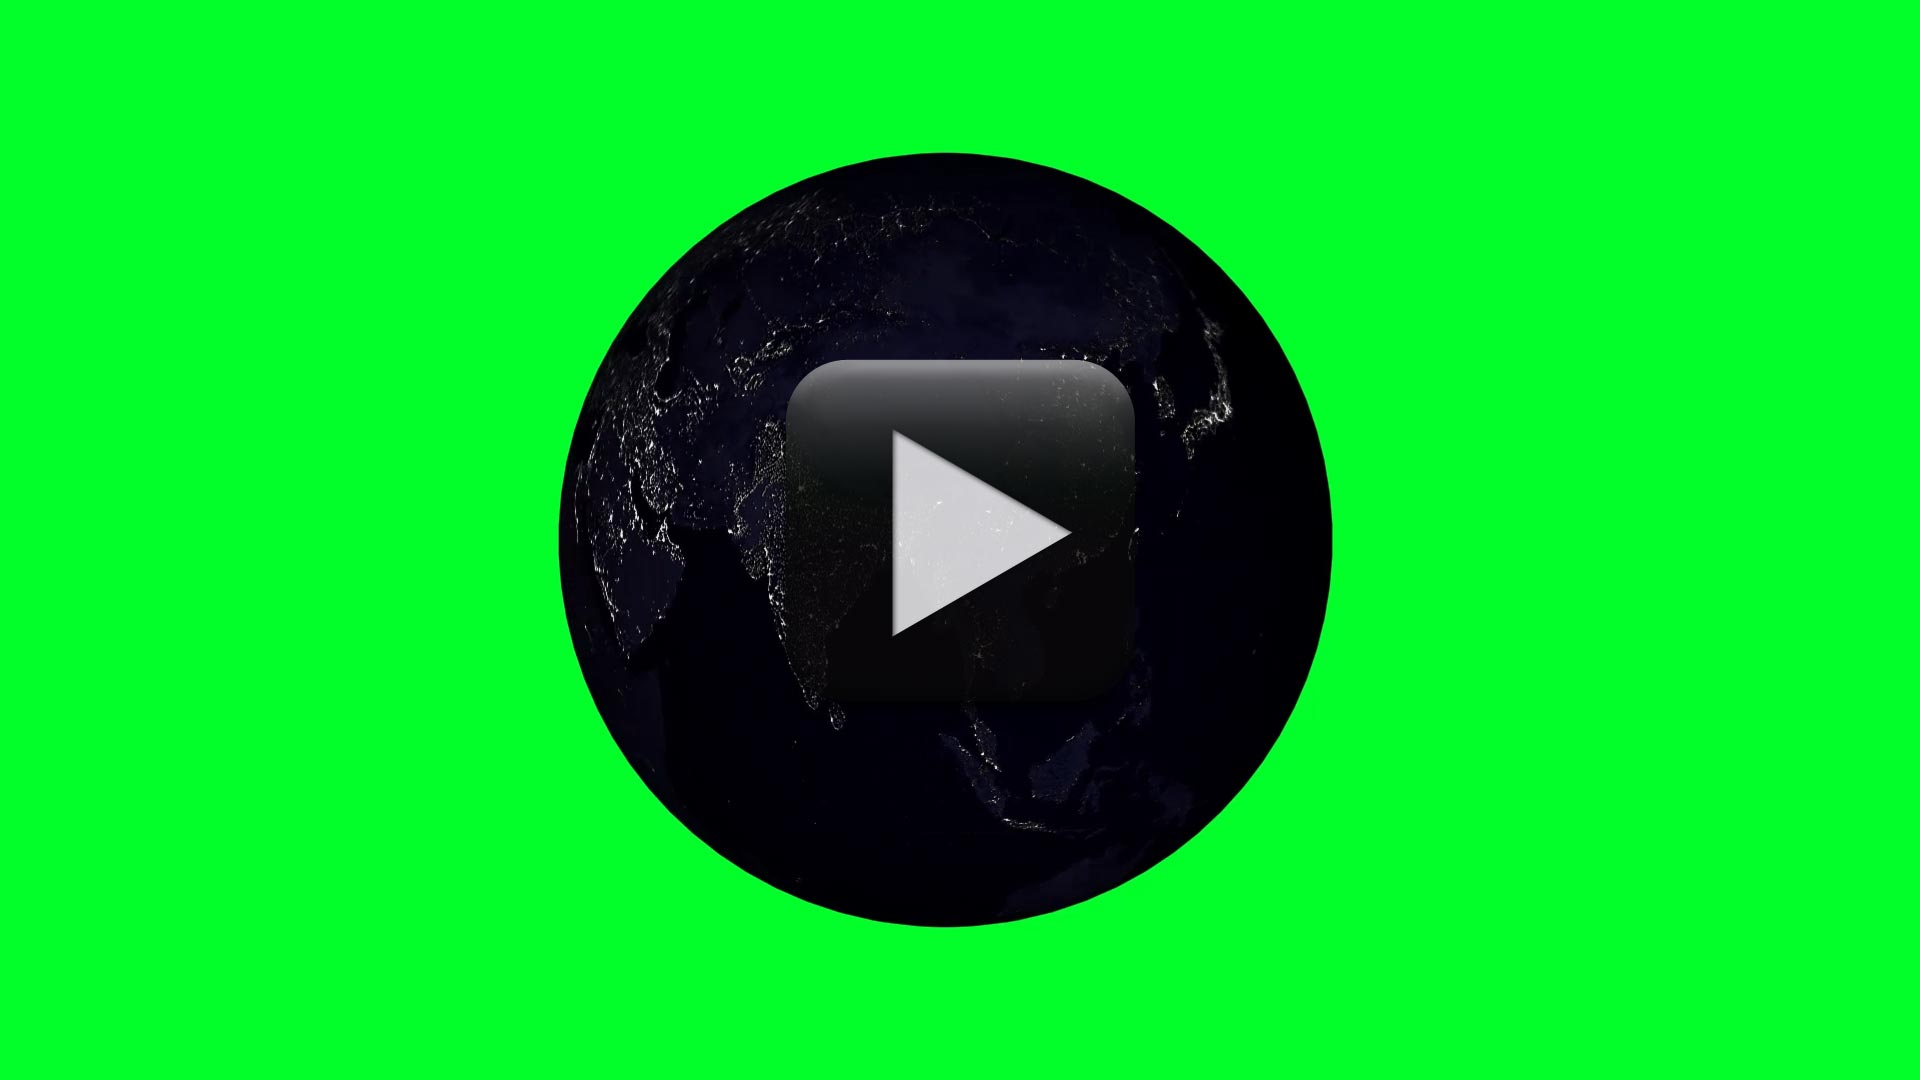 Planet Earth Green Screen-Night Time Lapse 1080p